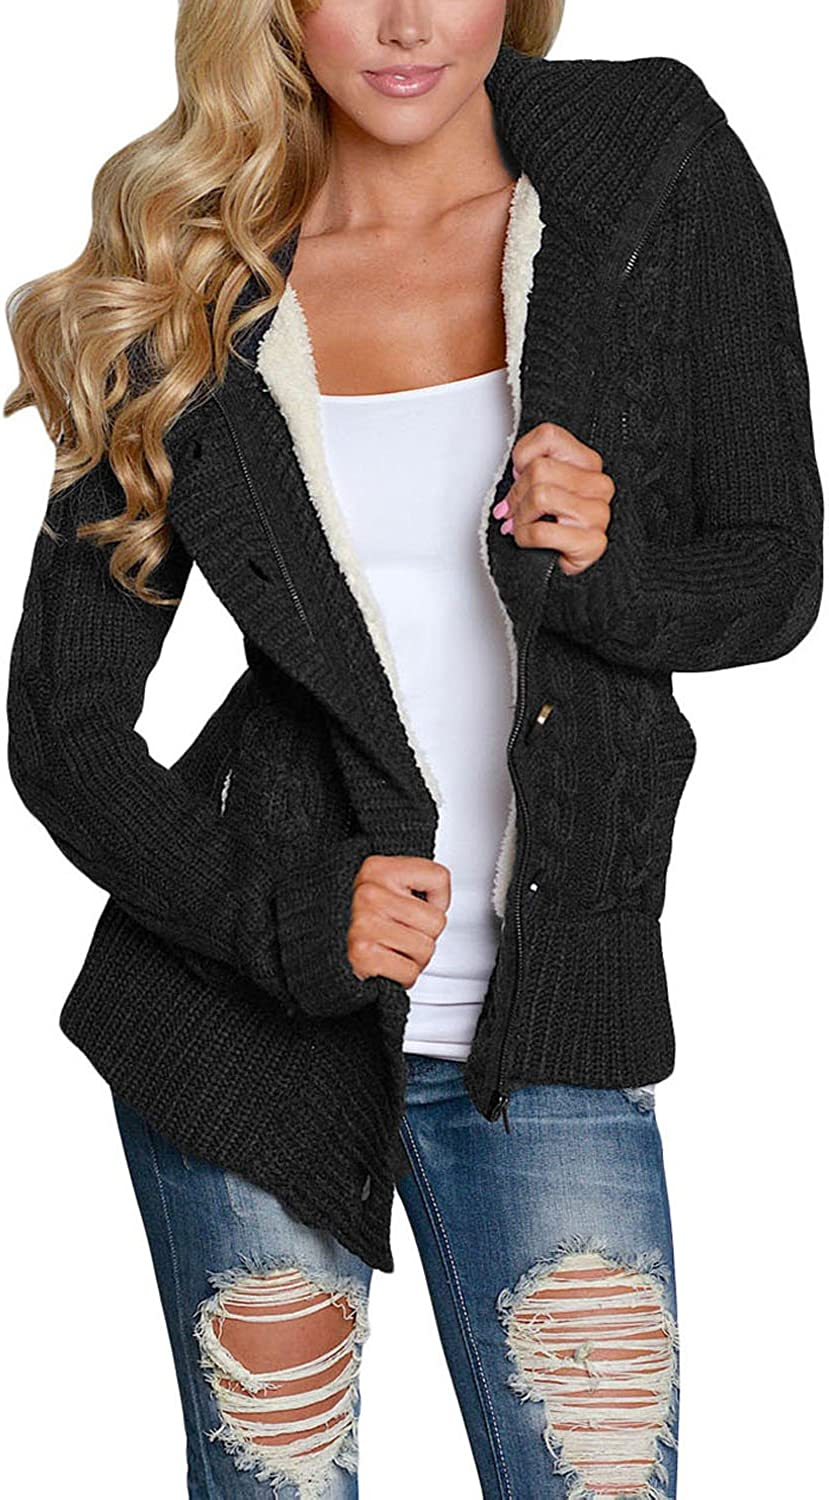 FIYOTE Strickjacken Lose mit Tasche Strickmantel mit Kapuze Winter Sweater Warm Strickwaren Langarm Strickcardigan 7 Farbe S/M/L/XL/XXL 1-schwarz